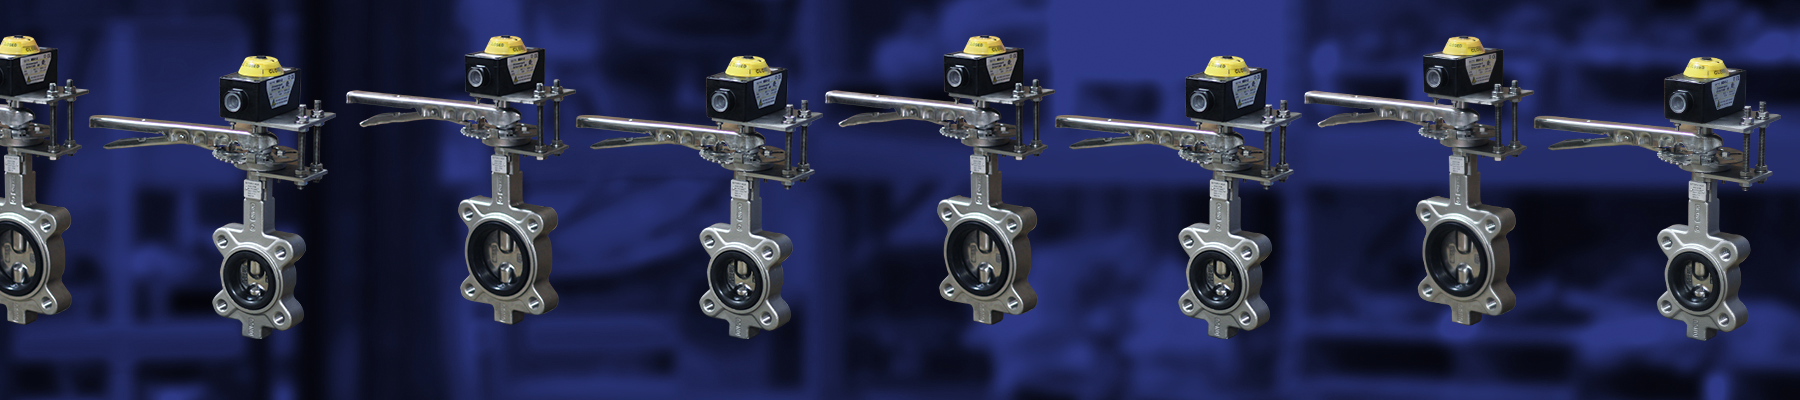 Manual SS Butterfly Valves w/ Limit Switch Kits